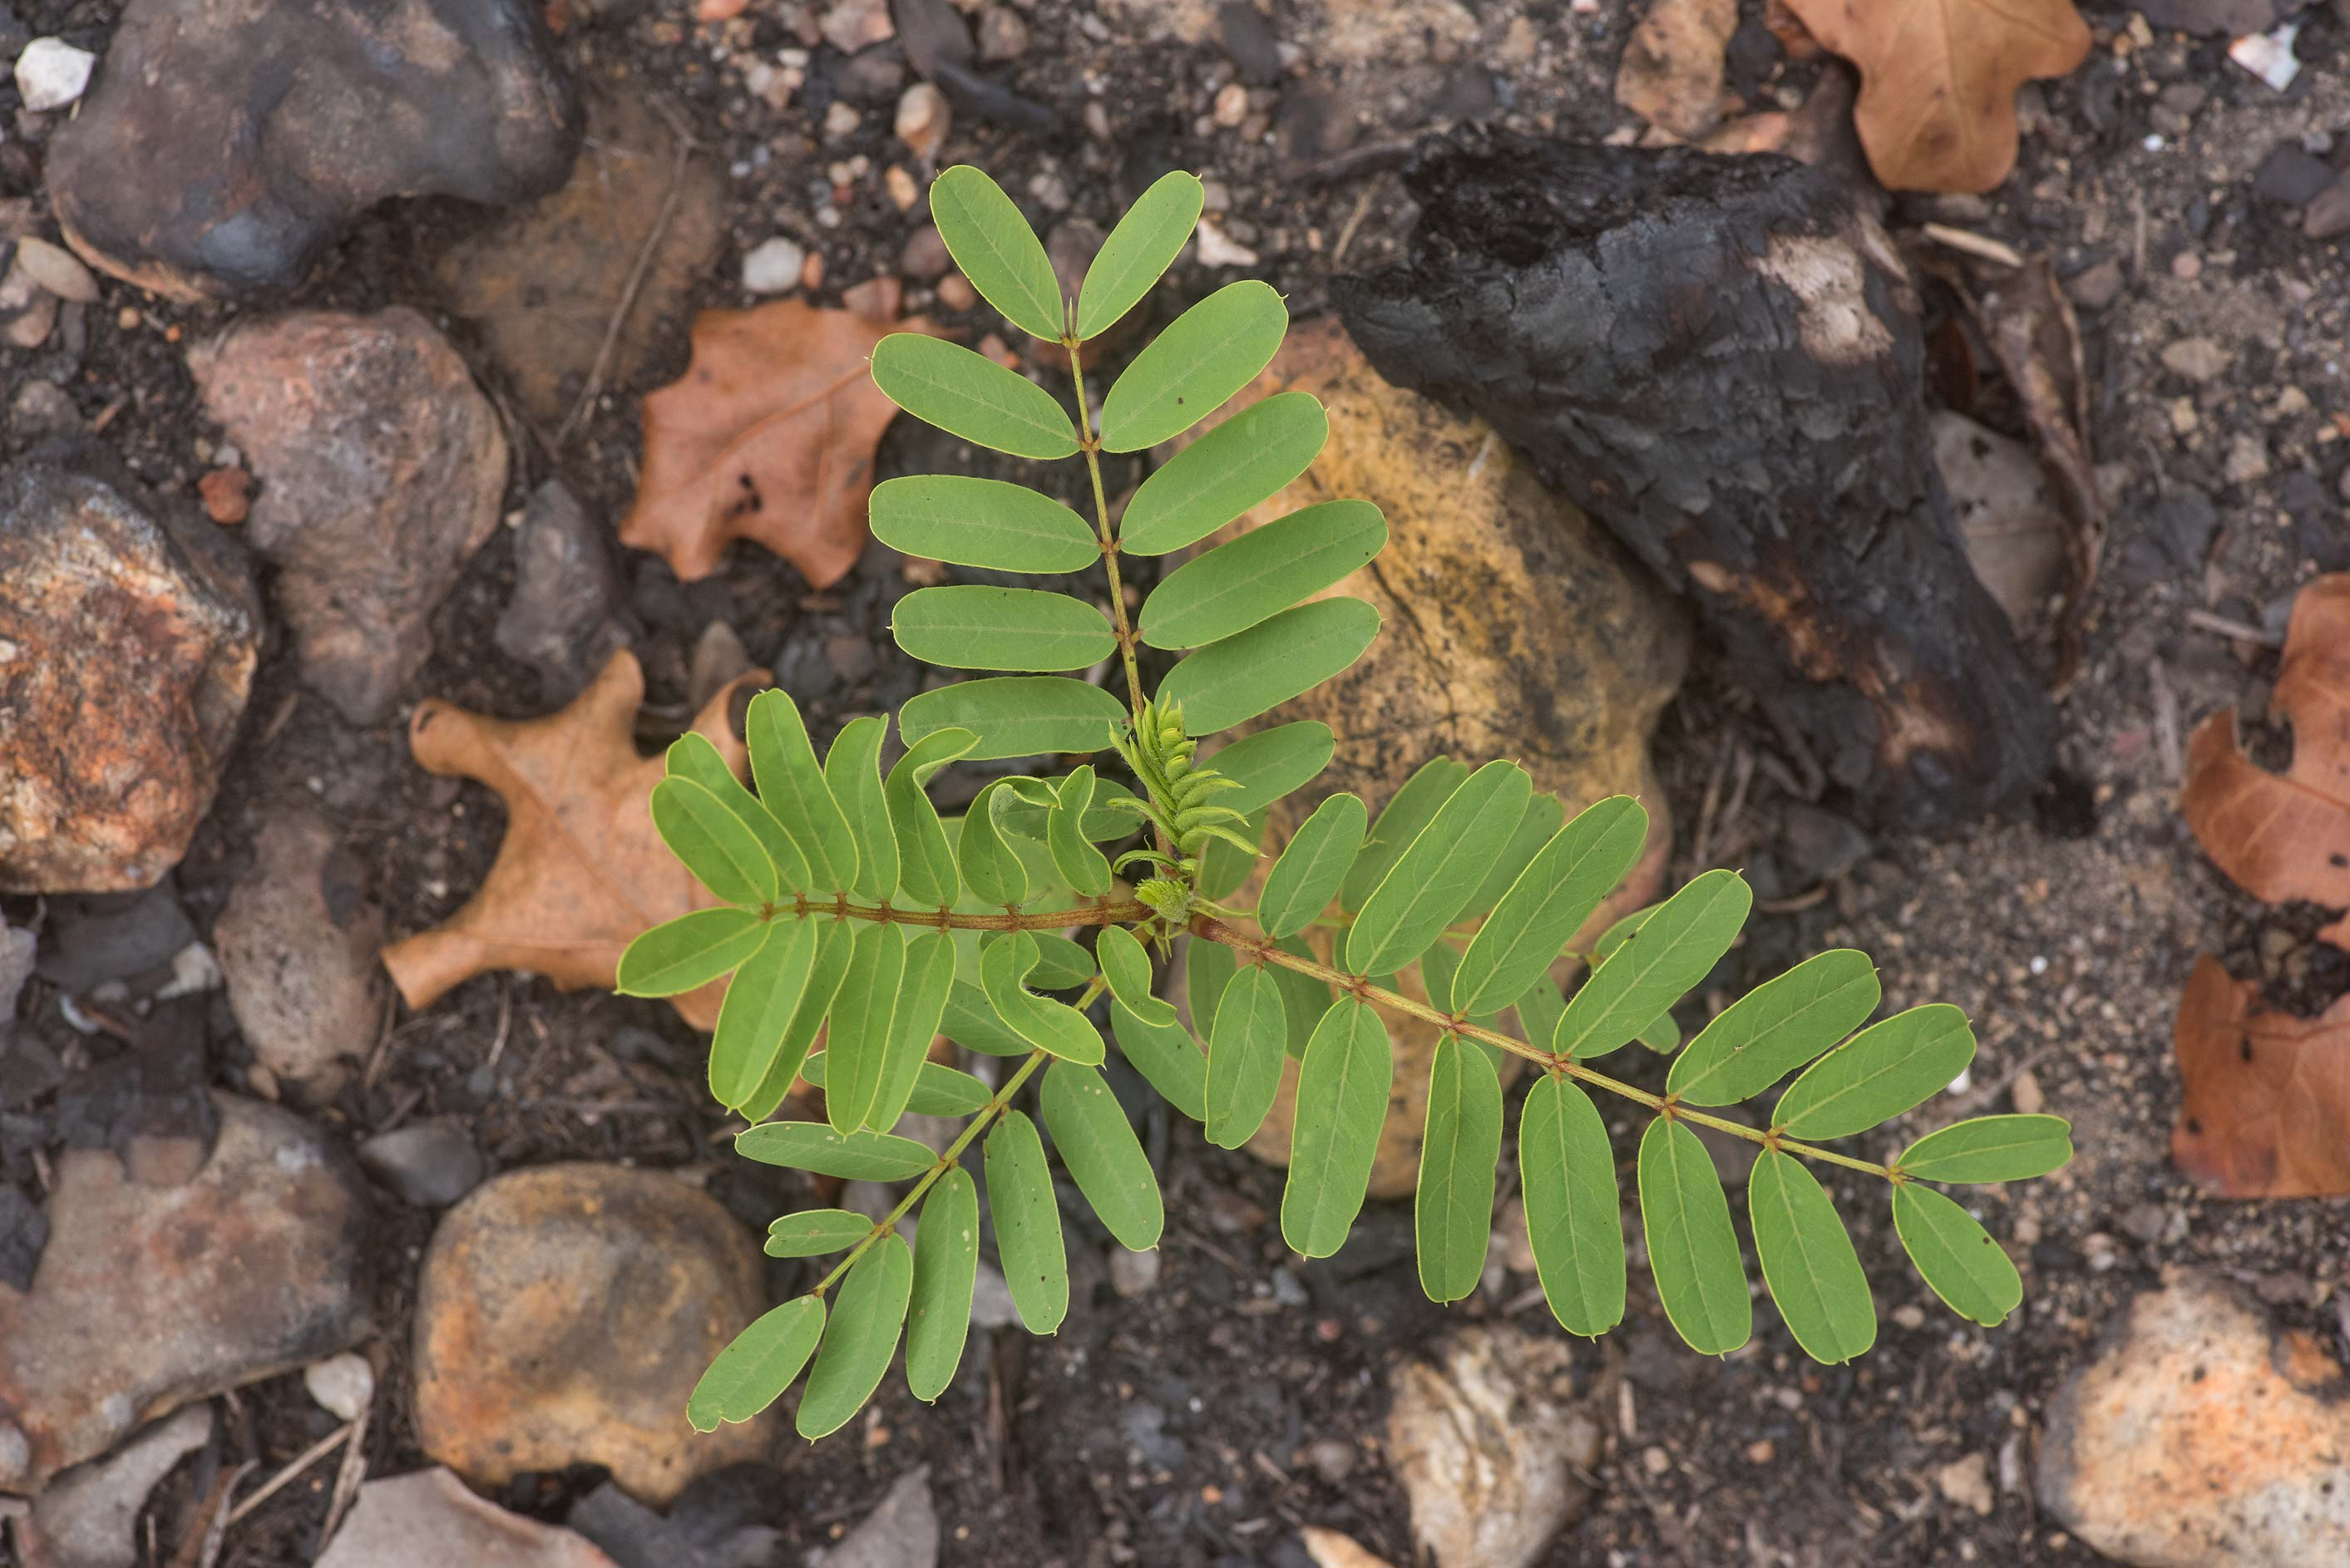 Seedling of partridge pea (Cassia fasciculata) on...in Bastrop State Park. Bastrop, Texas